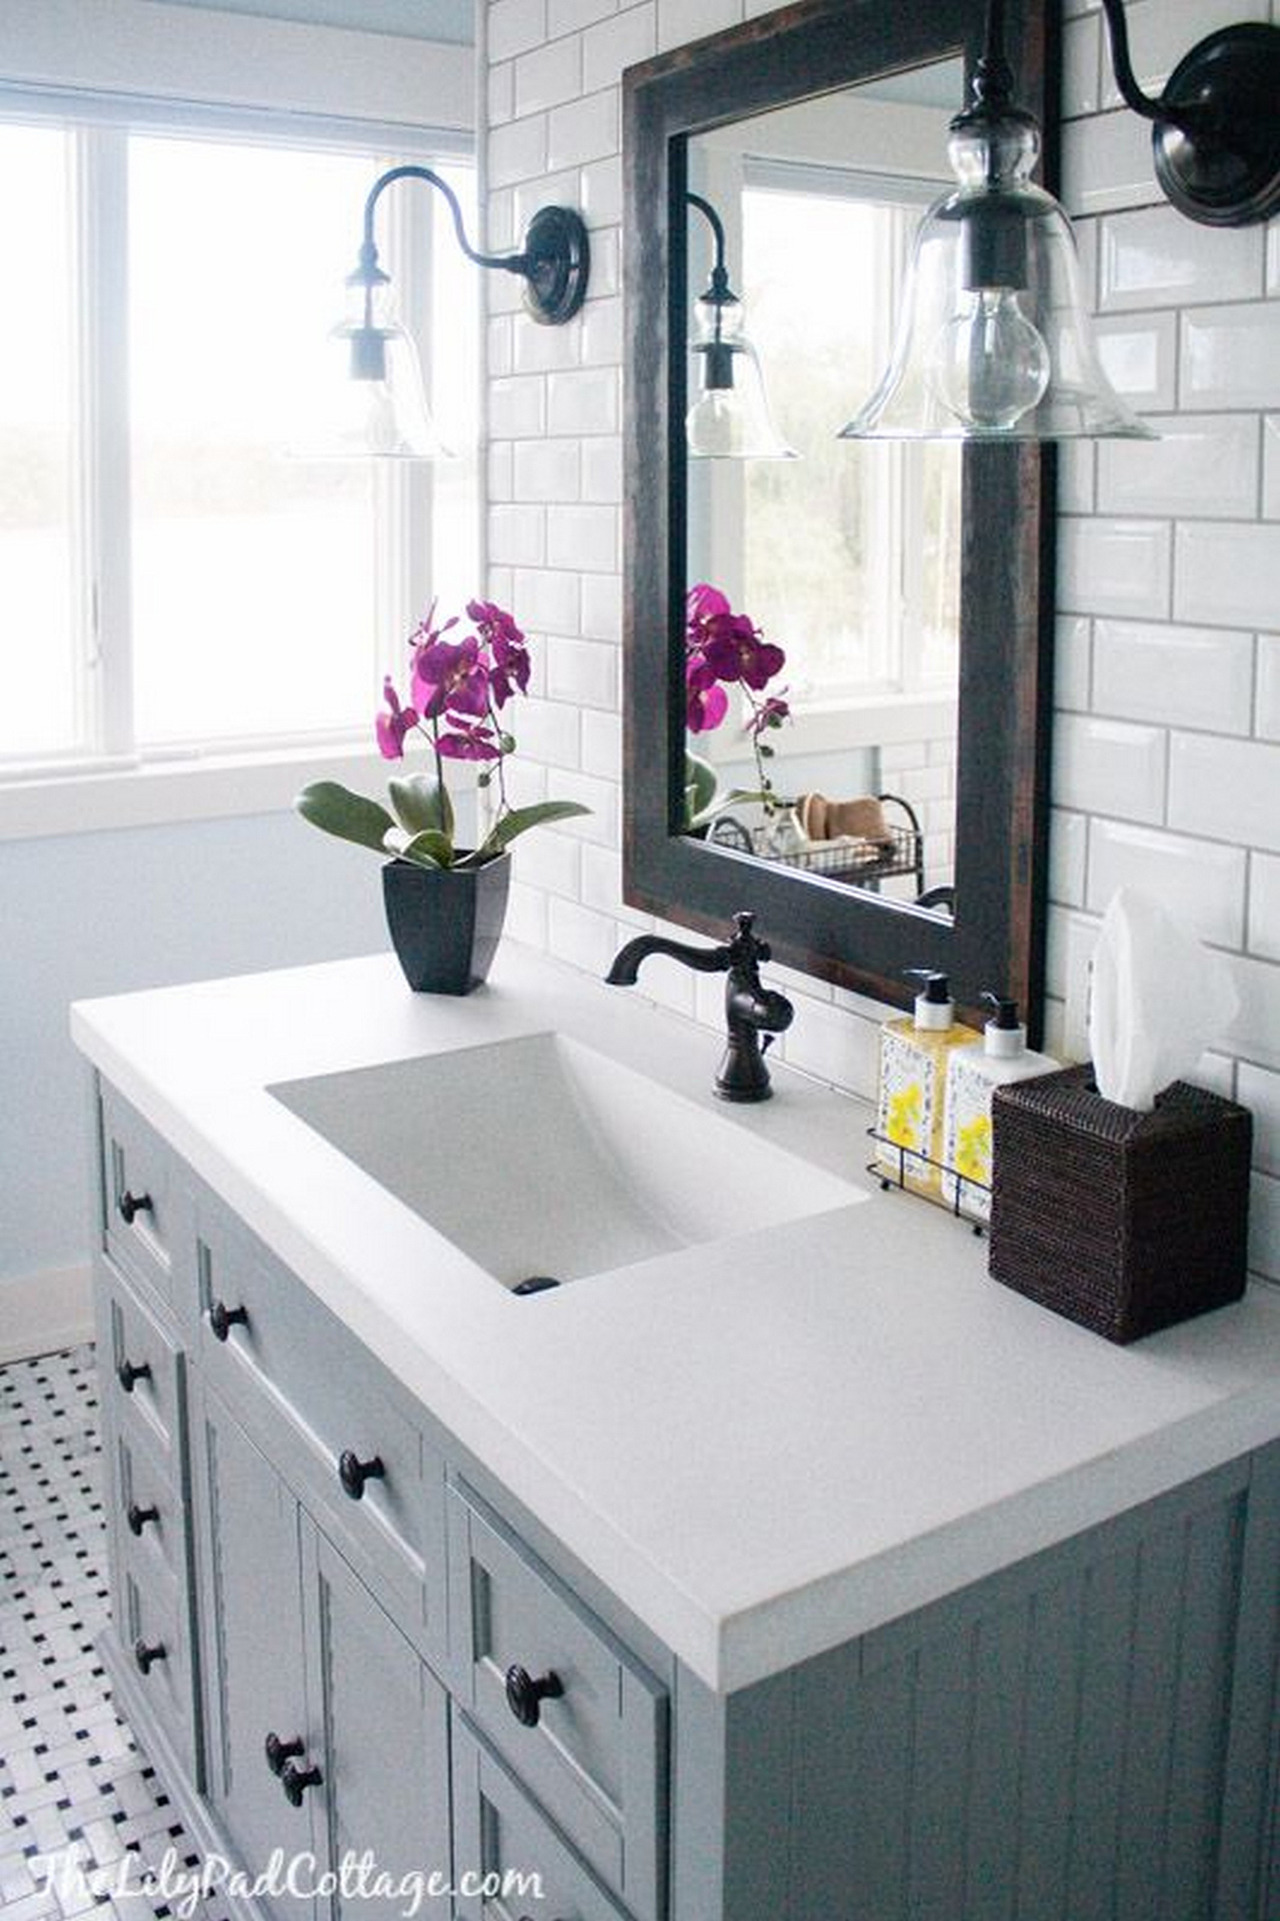 Bathroom Decorating Accessories and Ideas Elegant 25 Best Bathroom Decor Ideas and Designs that are Trendy In 2020